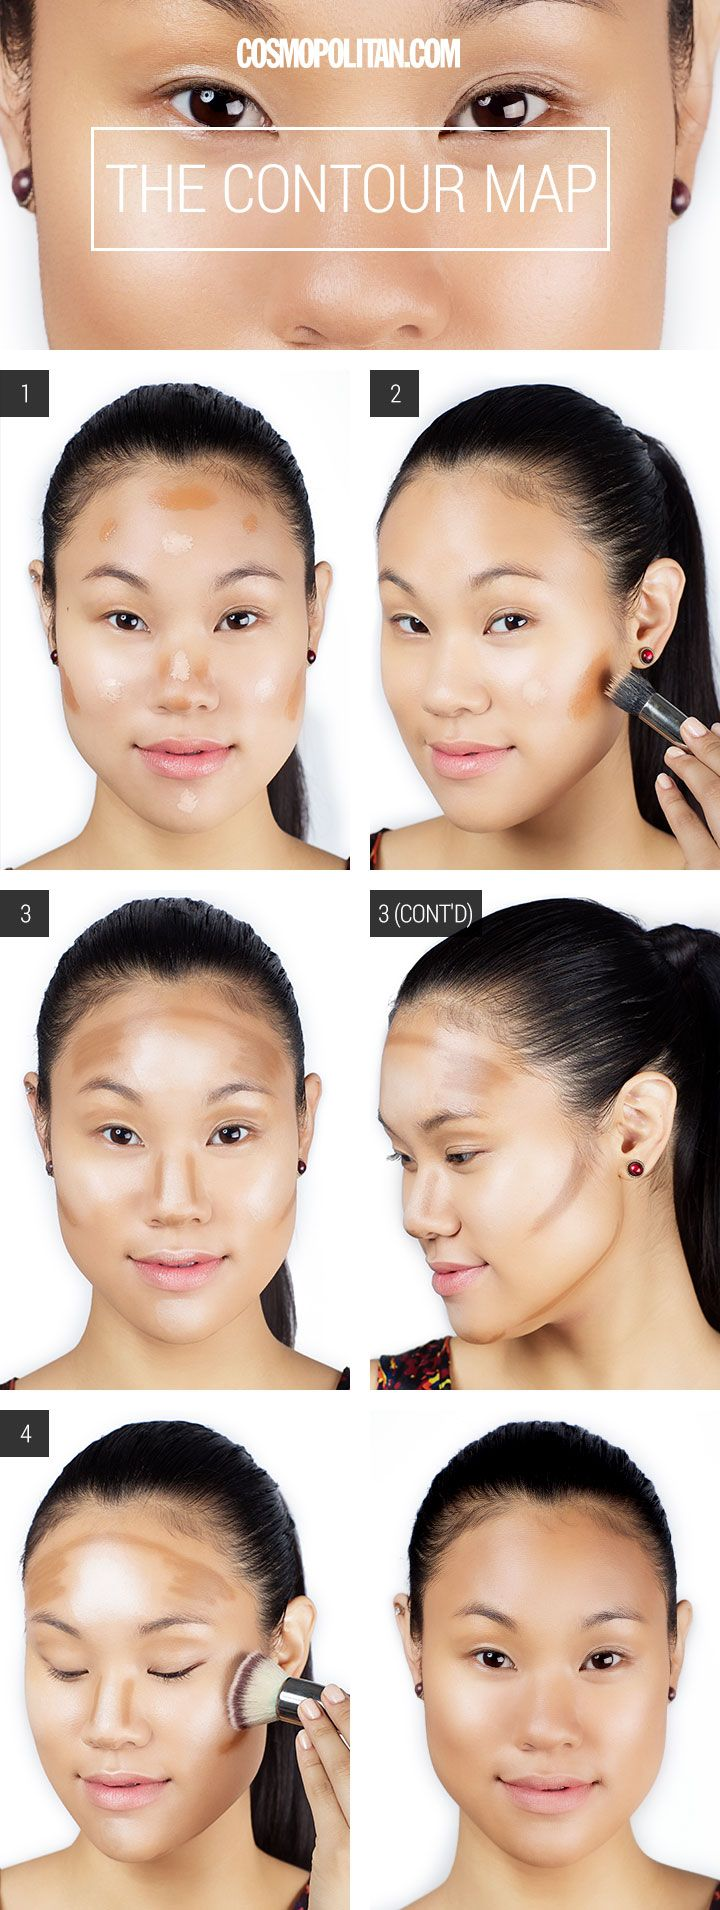 124 Best Images About Highlighting / Contouring